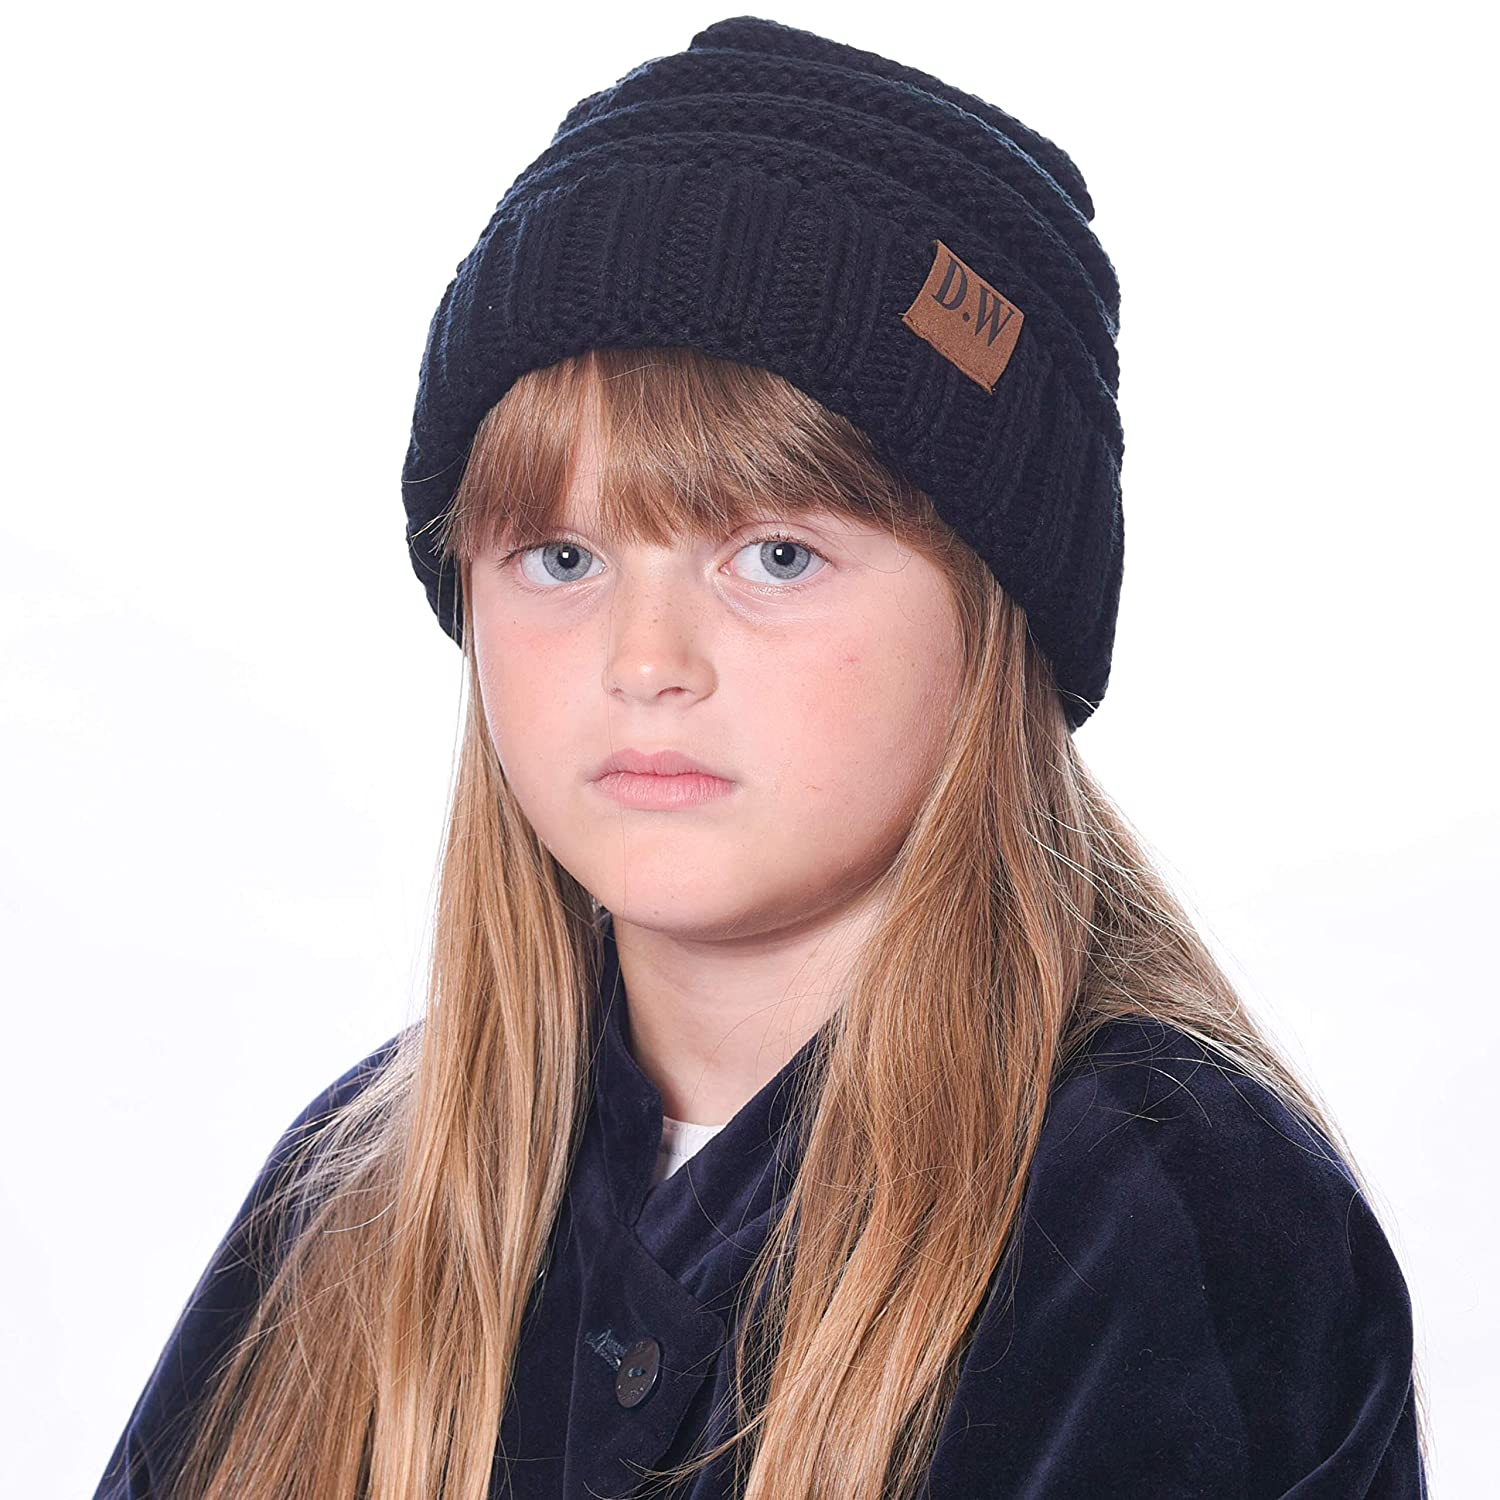 1aca49290f9 Amazon.com  Debra Weitzner Beanie Hats for Kids Unisex Winter Slouchy Beanie  for Girls Boys Toddlers Black  Clothing